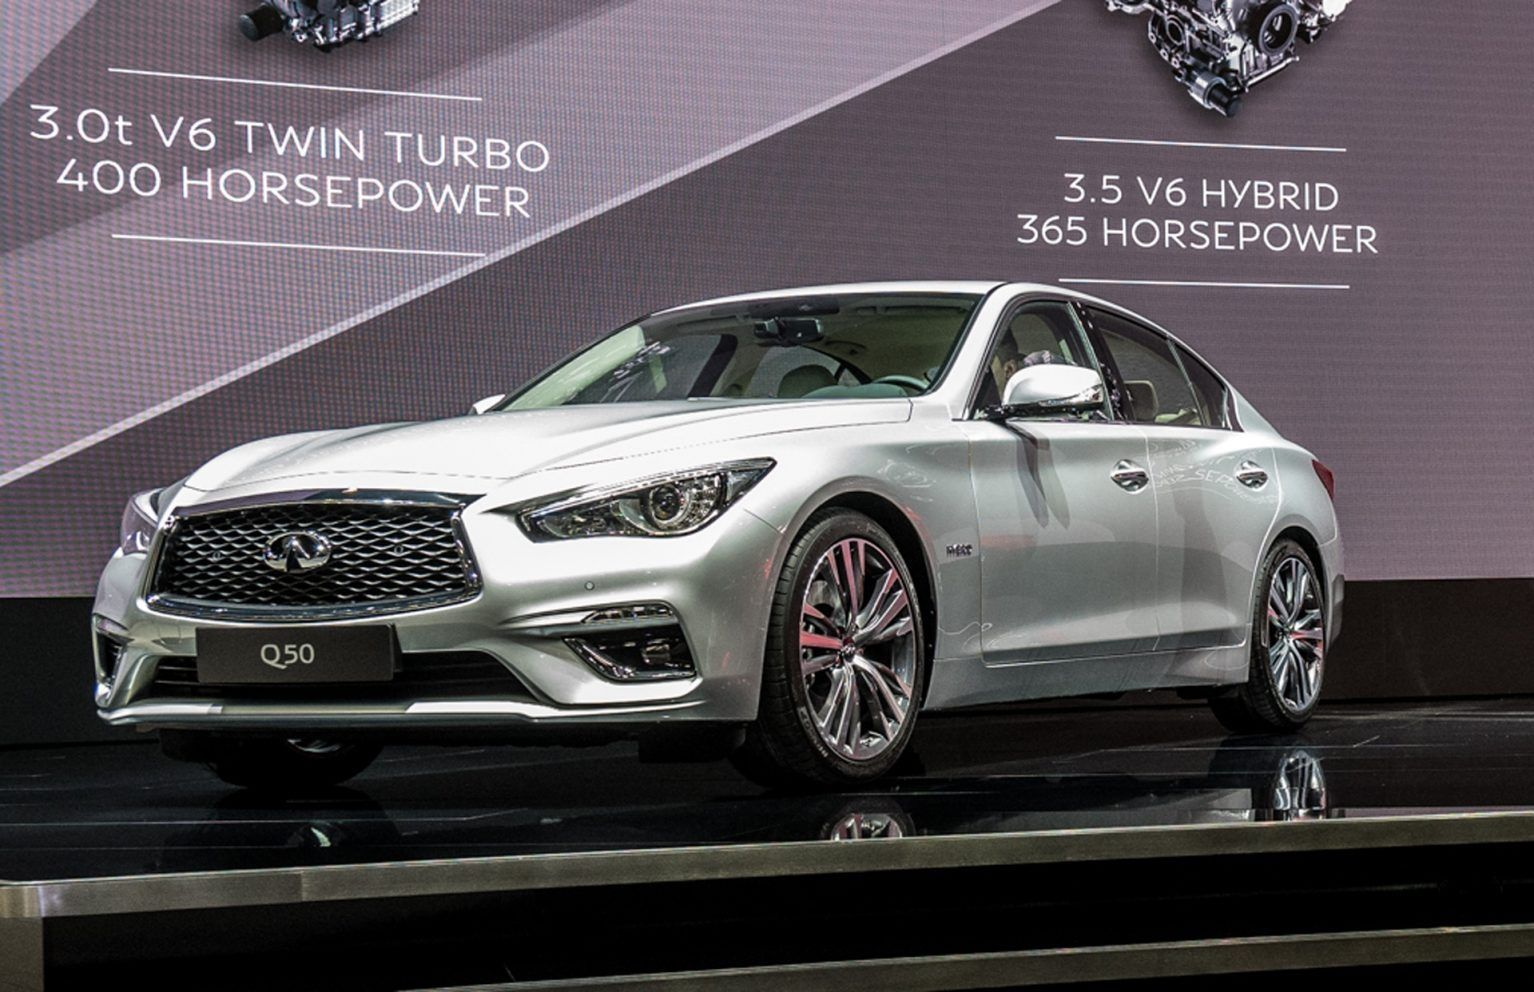 New 2019 Infiniti Q50 Release Specs And Review Car Price 2019